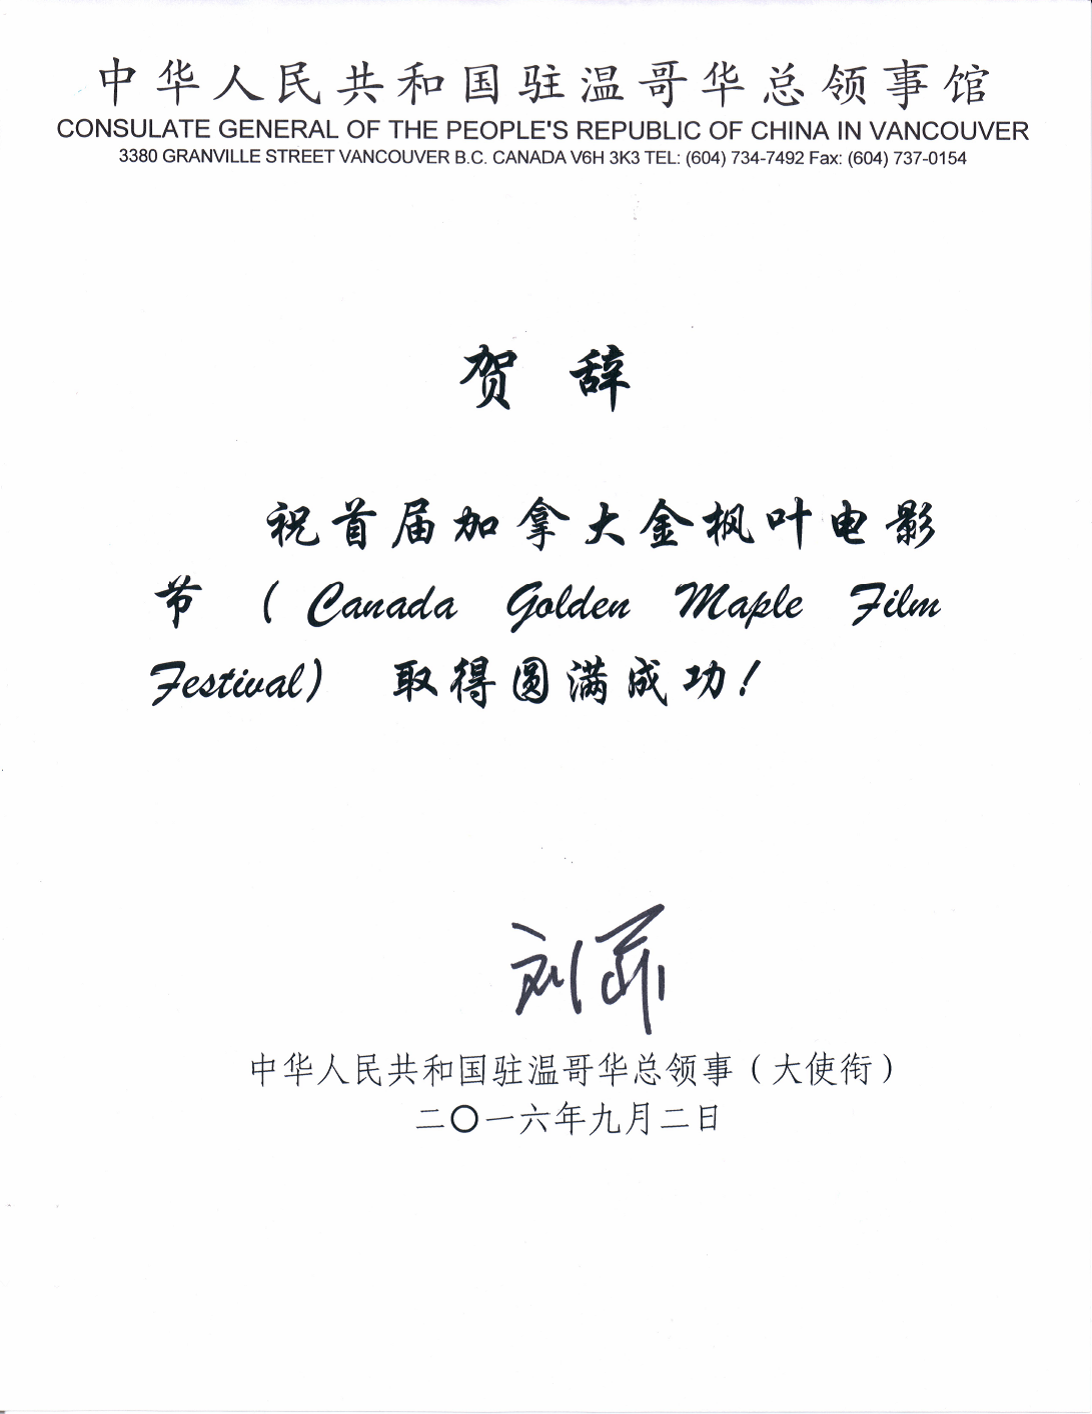 Congratulatory Letter from Consulate General of the People's Republic of China in Vancouver